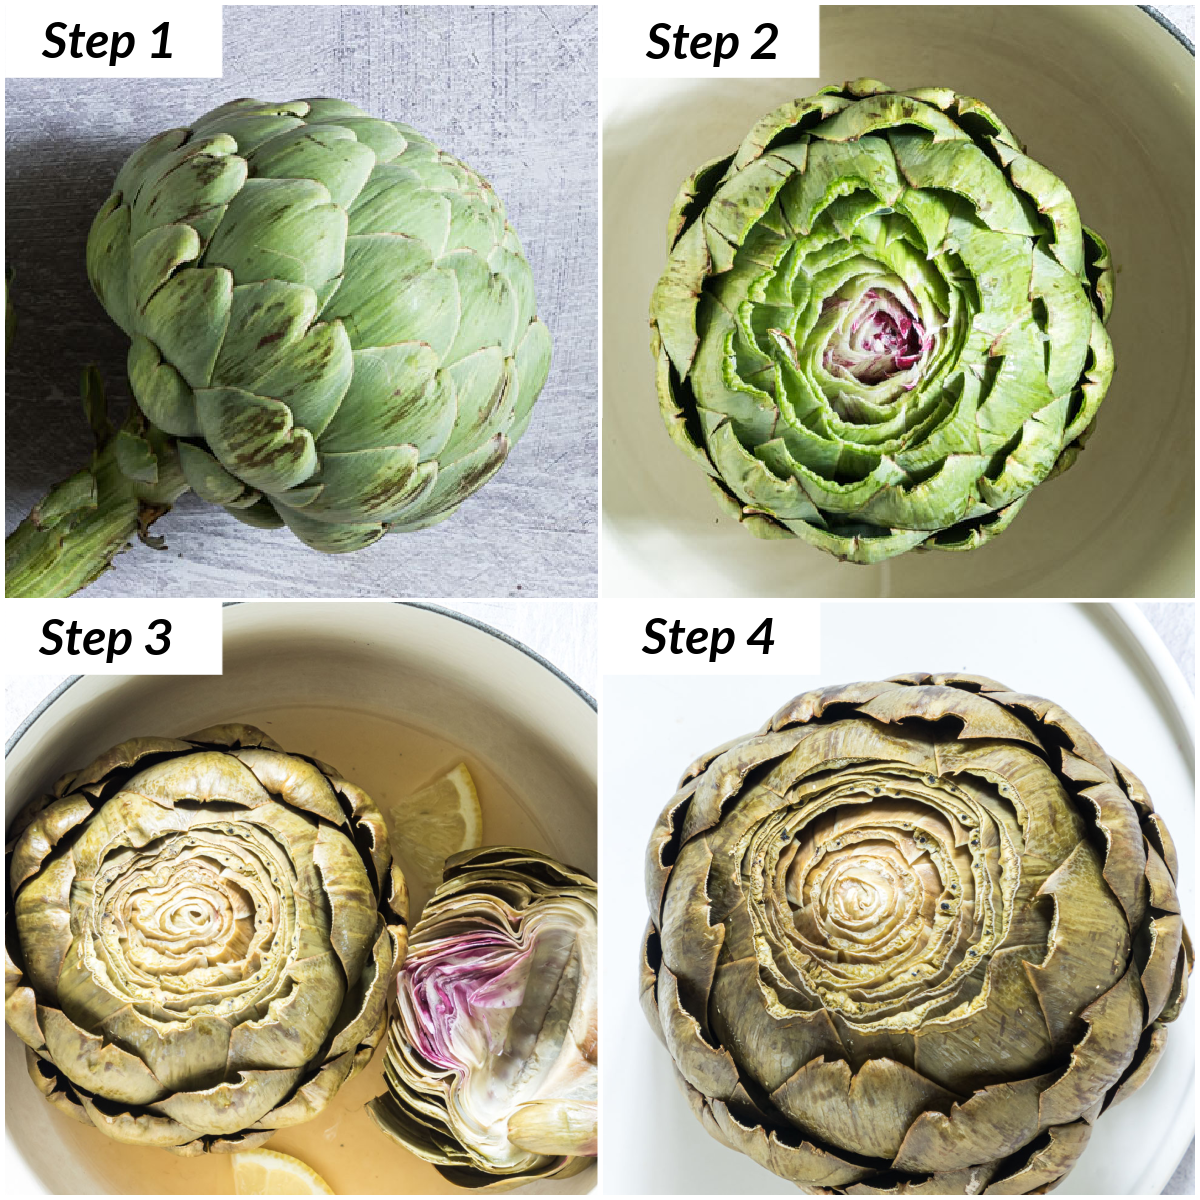 image collage showing the steps involved in learning how to steam artichokes